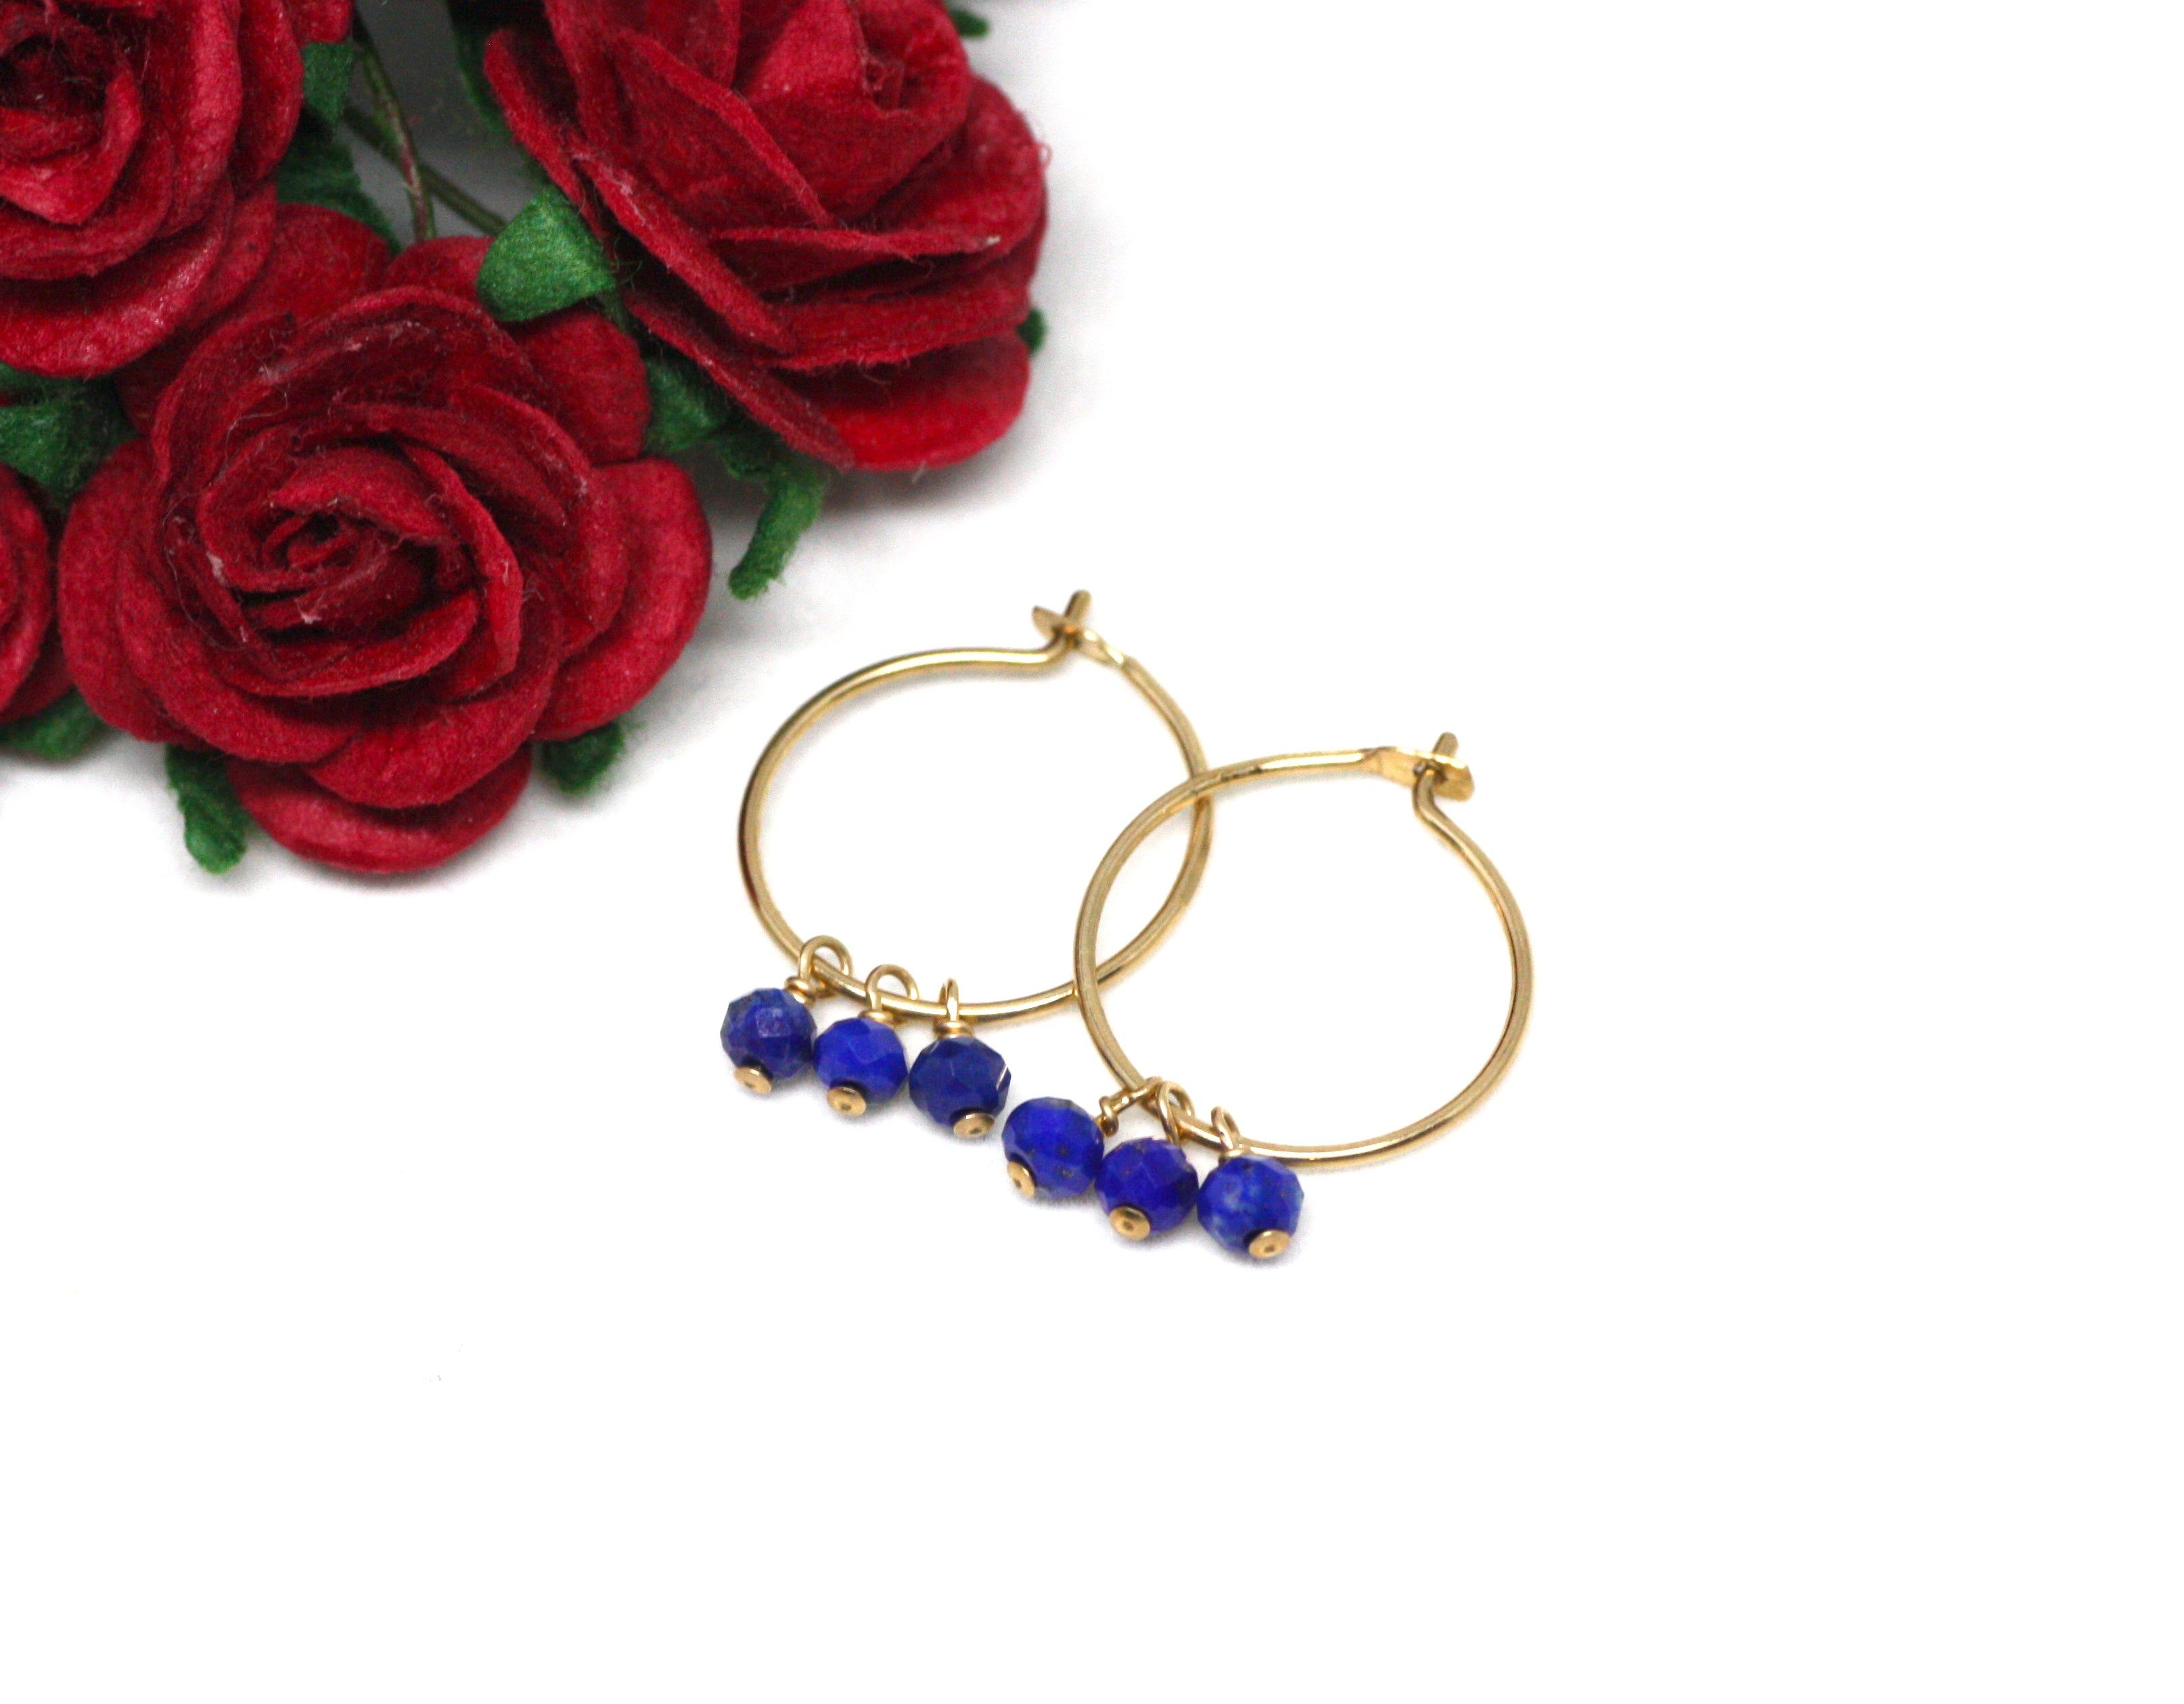 Lapis Lazuli Small Hoop Earrings in Gold